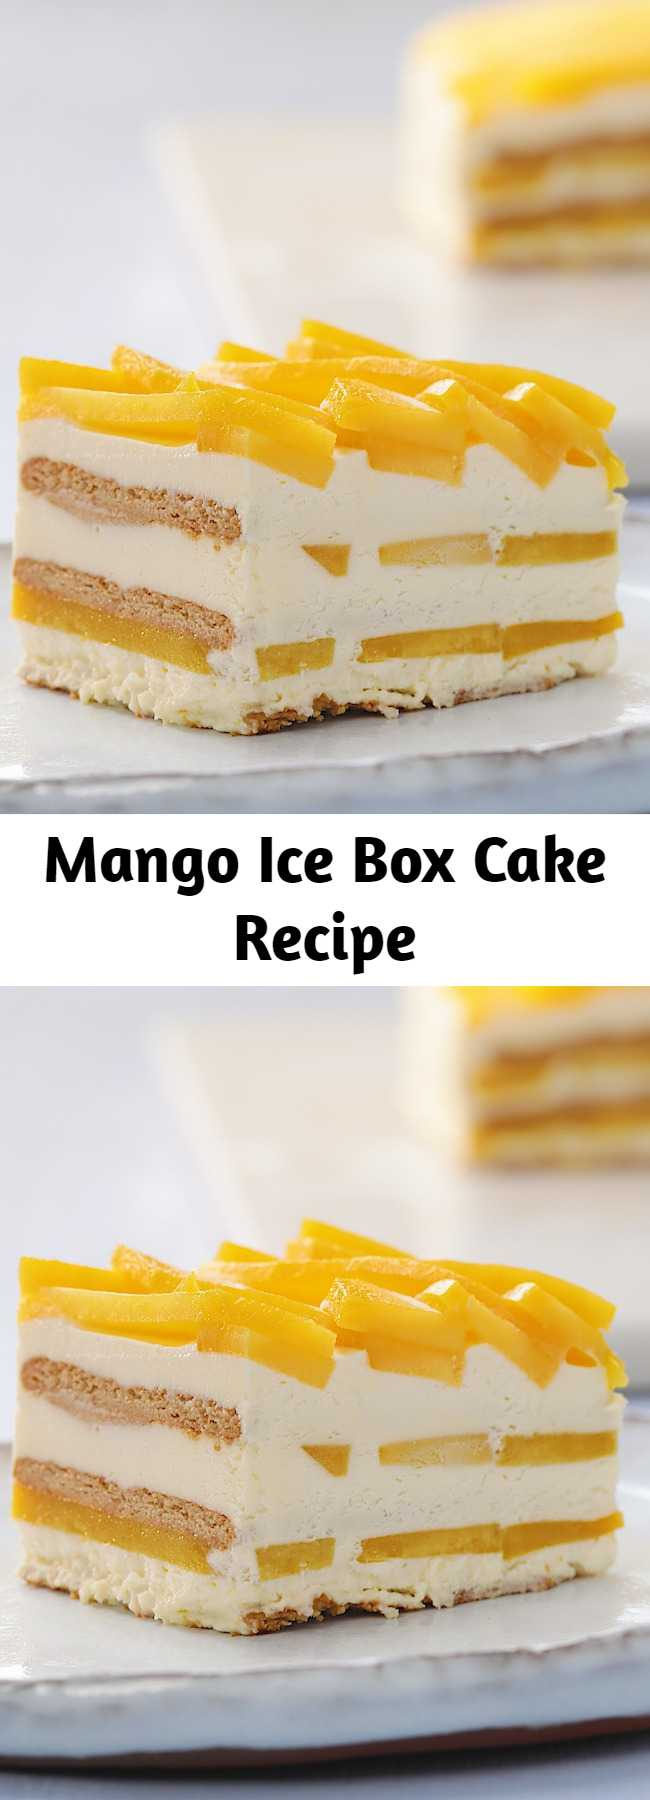 Mango Ice Box Cake Recipe - This mango icebox cake is a Summer family classic! the layers of juicy fresh mango are sure to keep you refreshed!